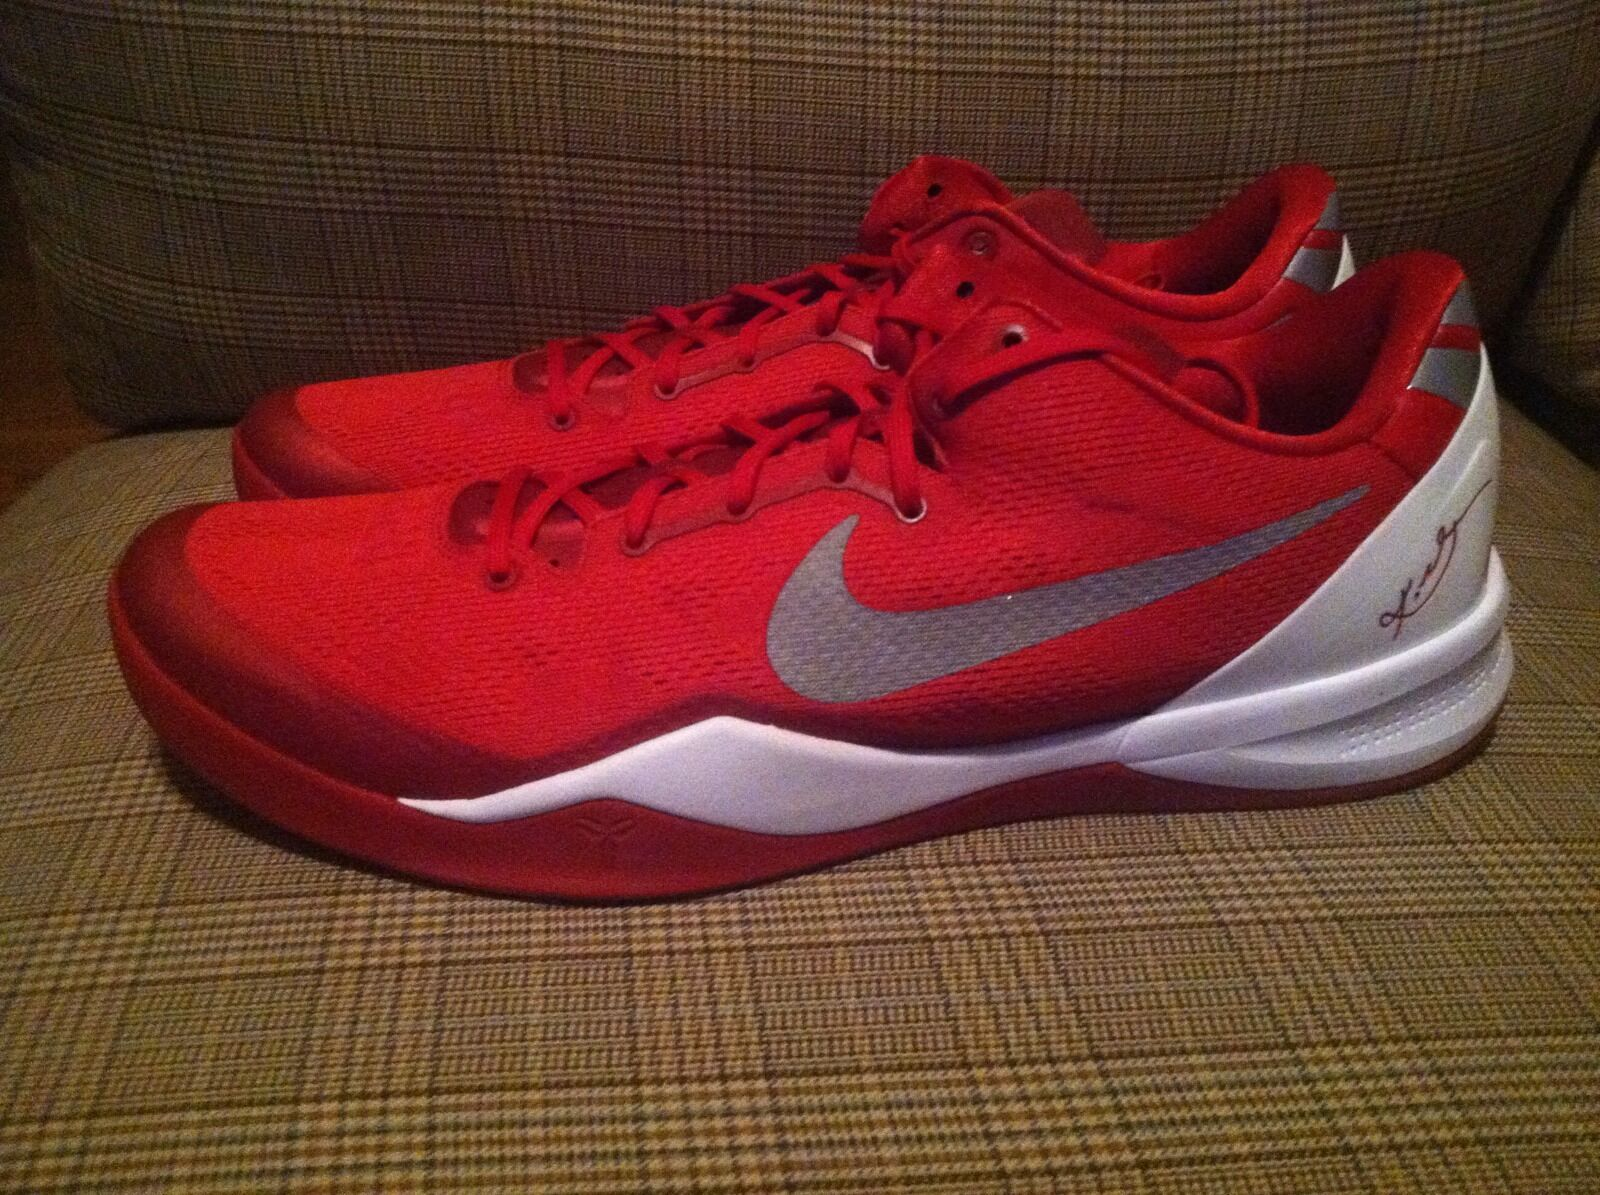 DS DS DS Nike Kobe 8 System TB Red Kobe Bryant Basketball Shoes Size 17.5 a79161